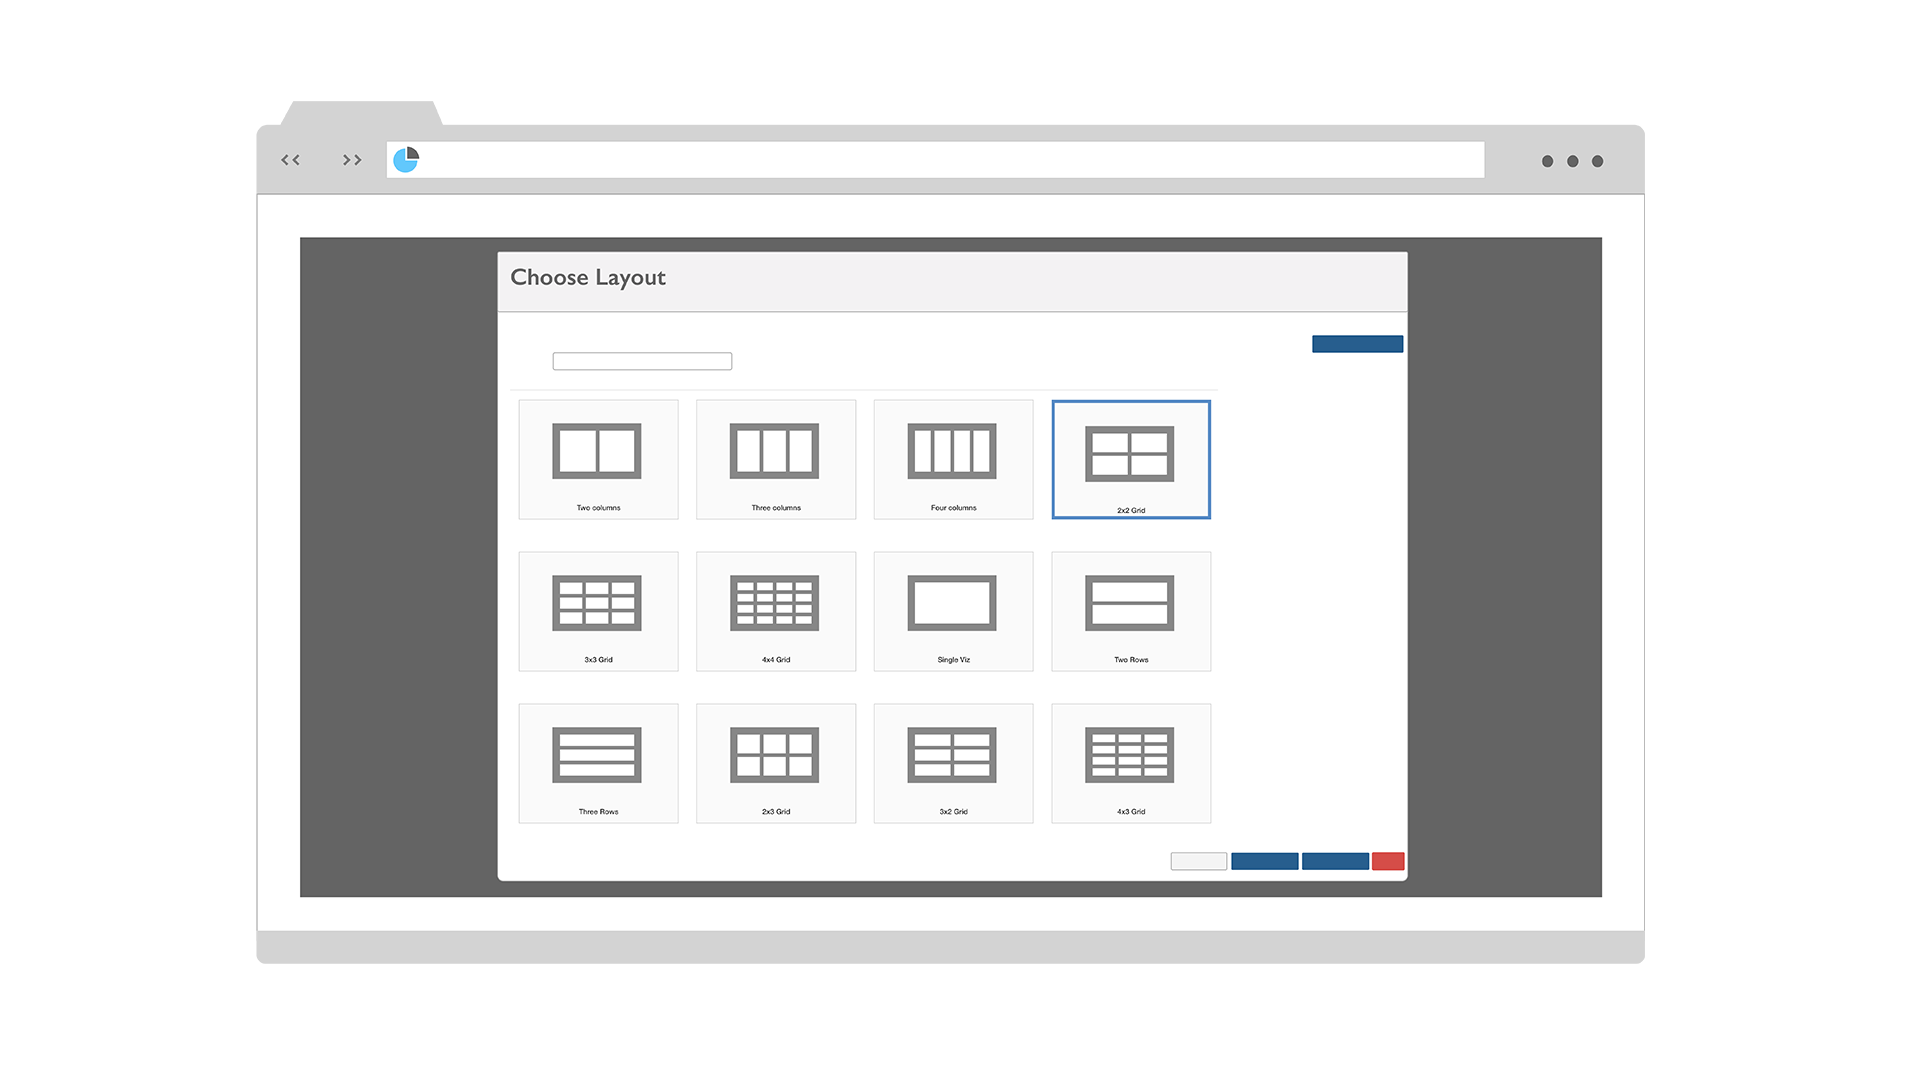 Organize Information Into Layouts